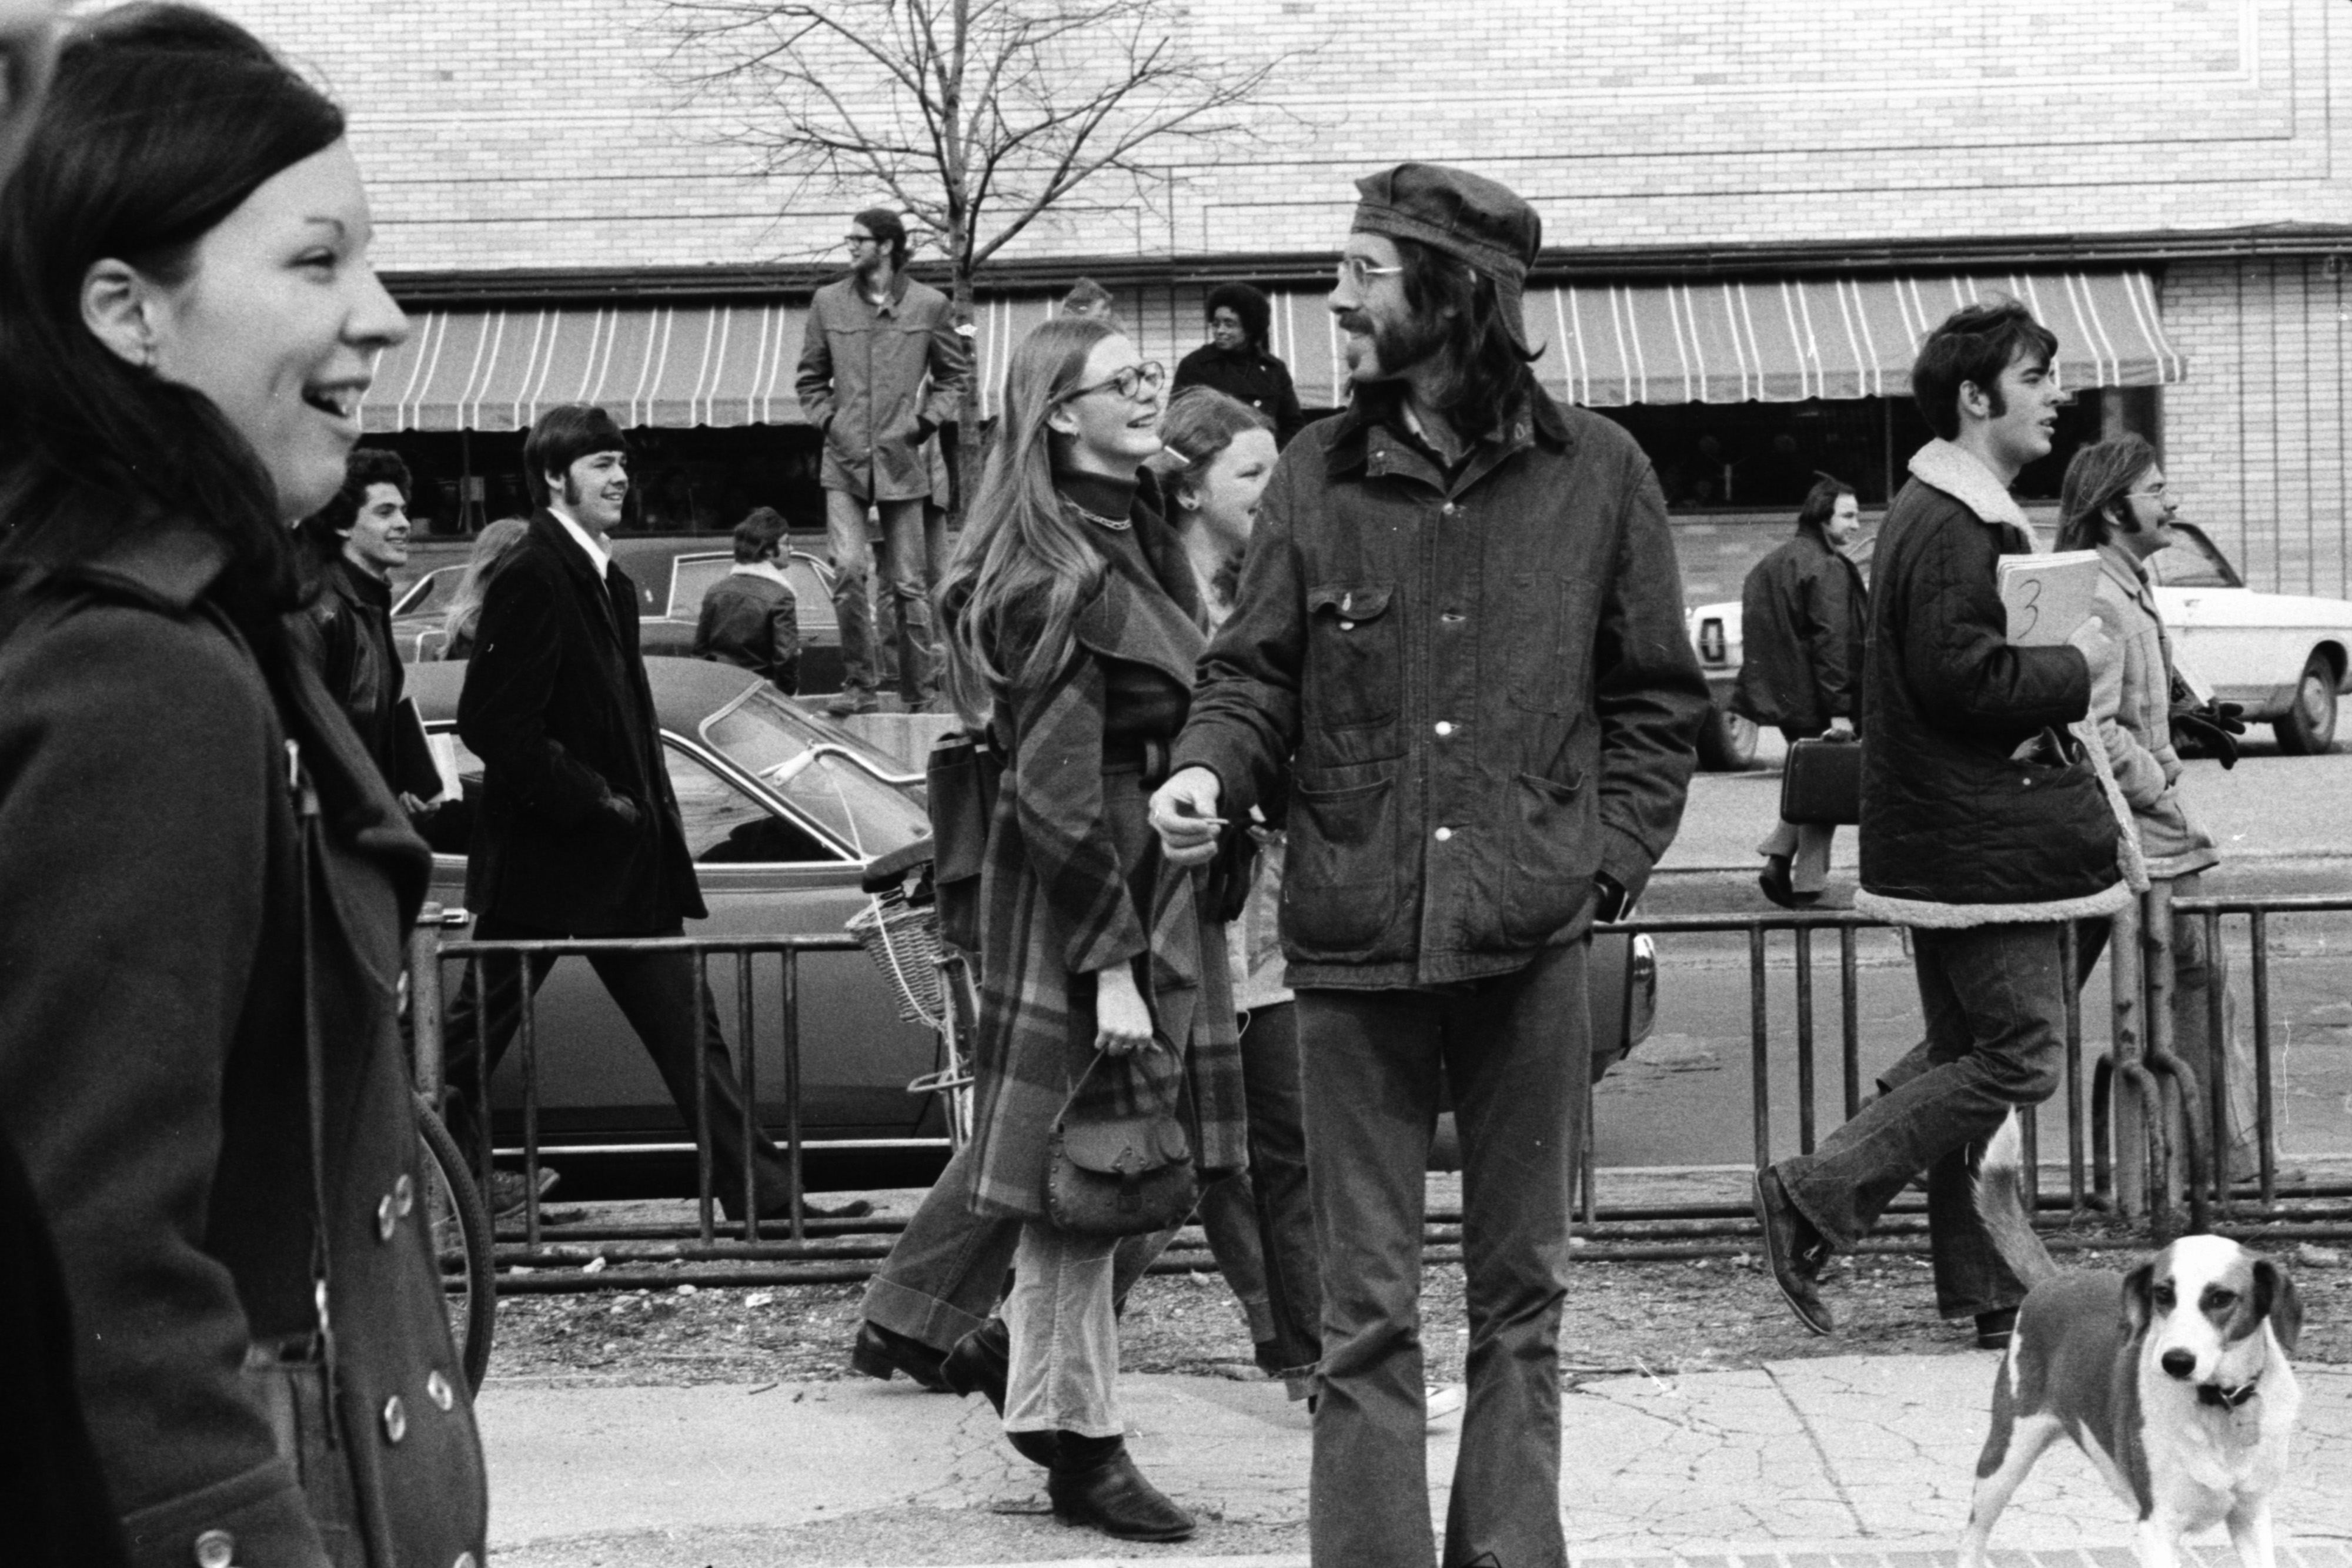 People on North University Avenue watching streakers on U-M campus, March 1974 image